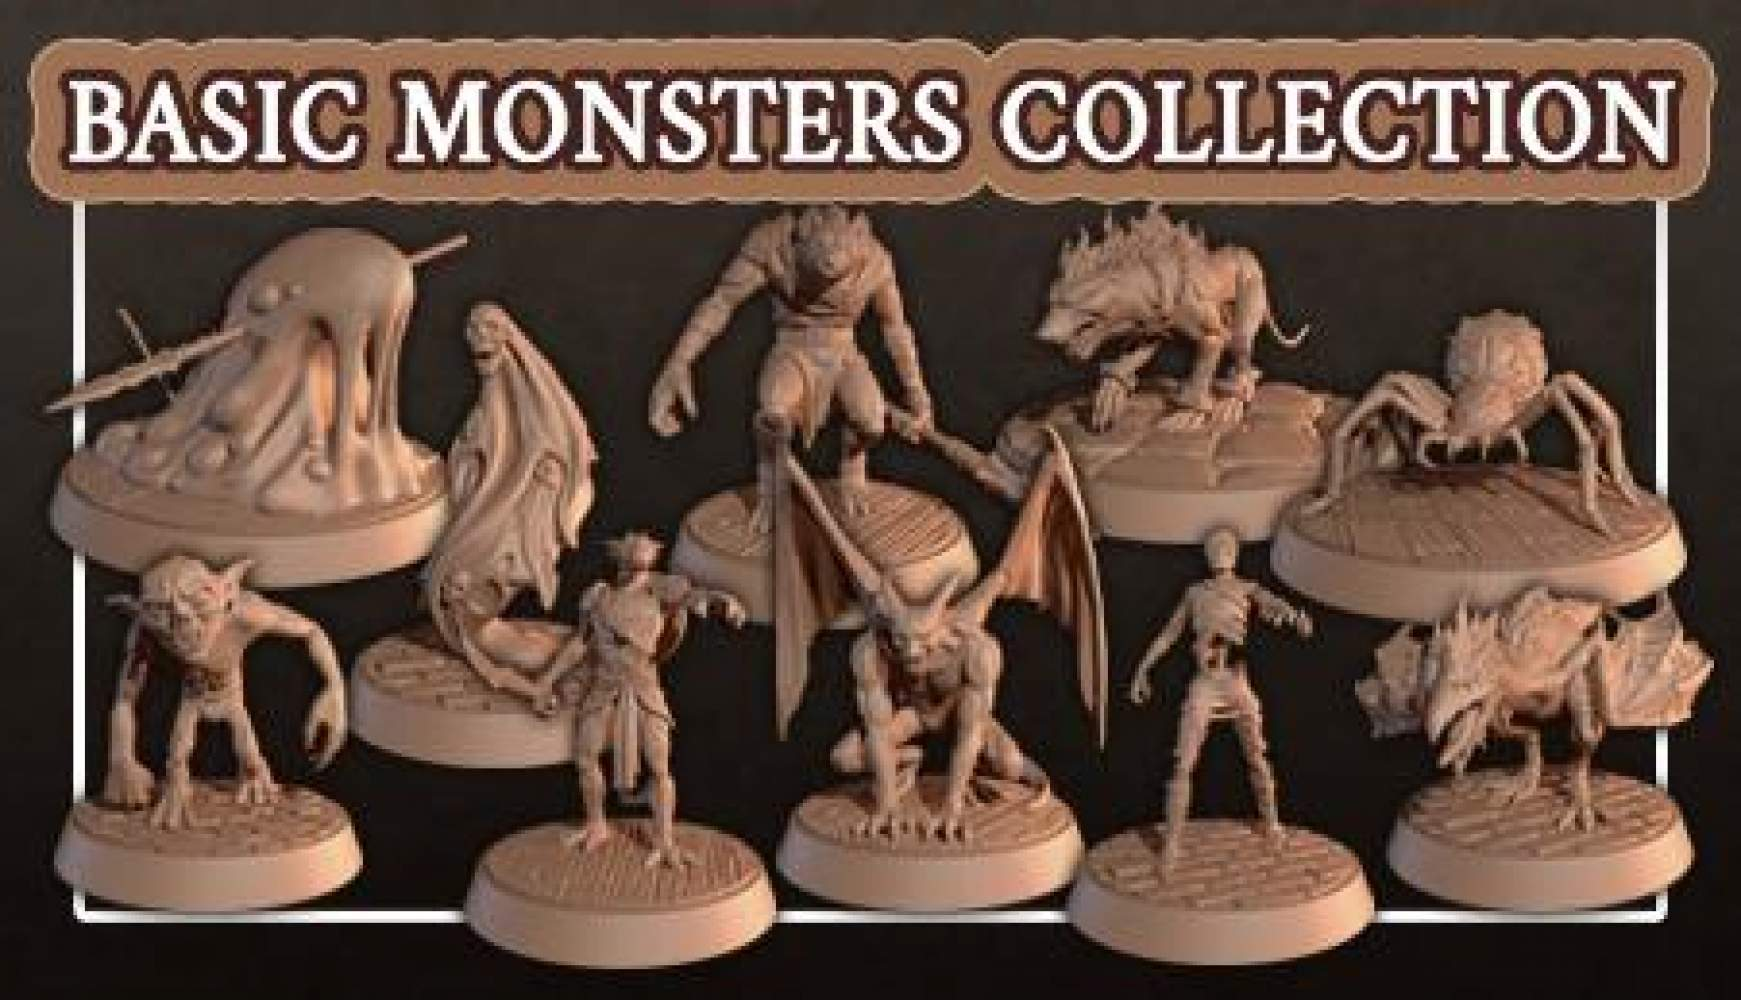 BASIC MONSTERS COLLECTION